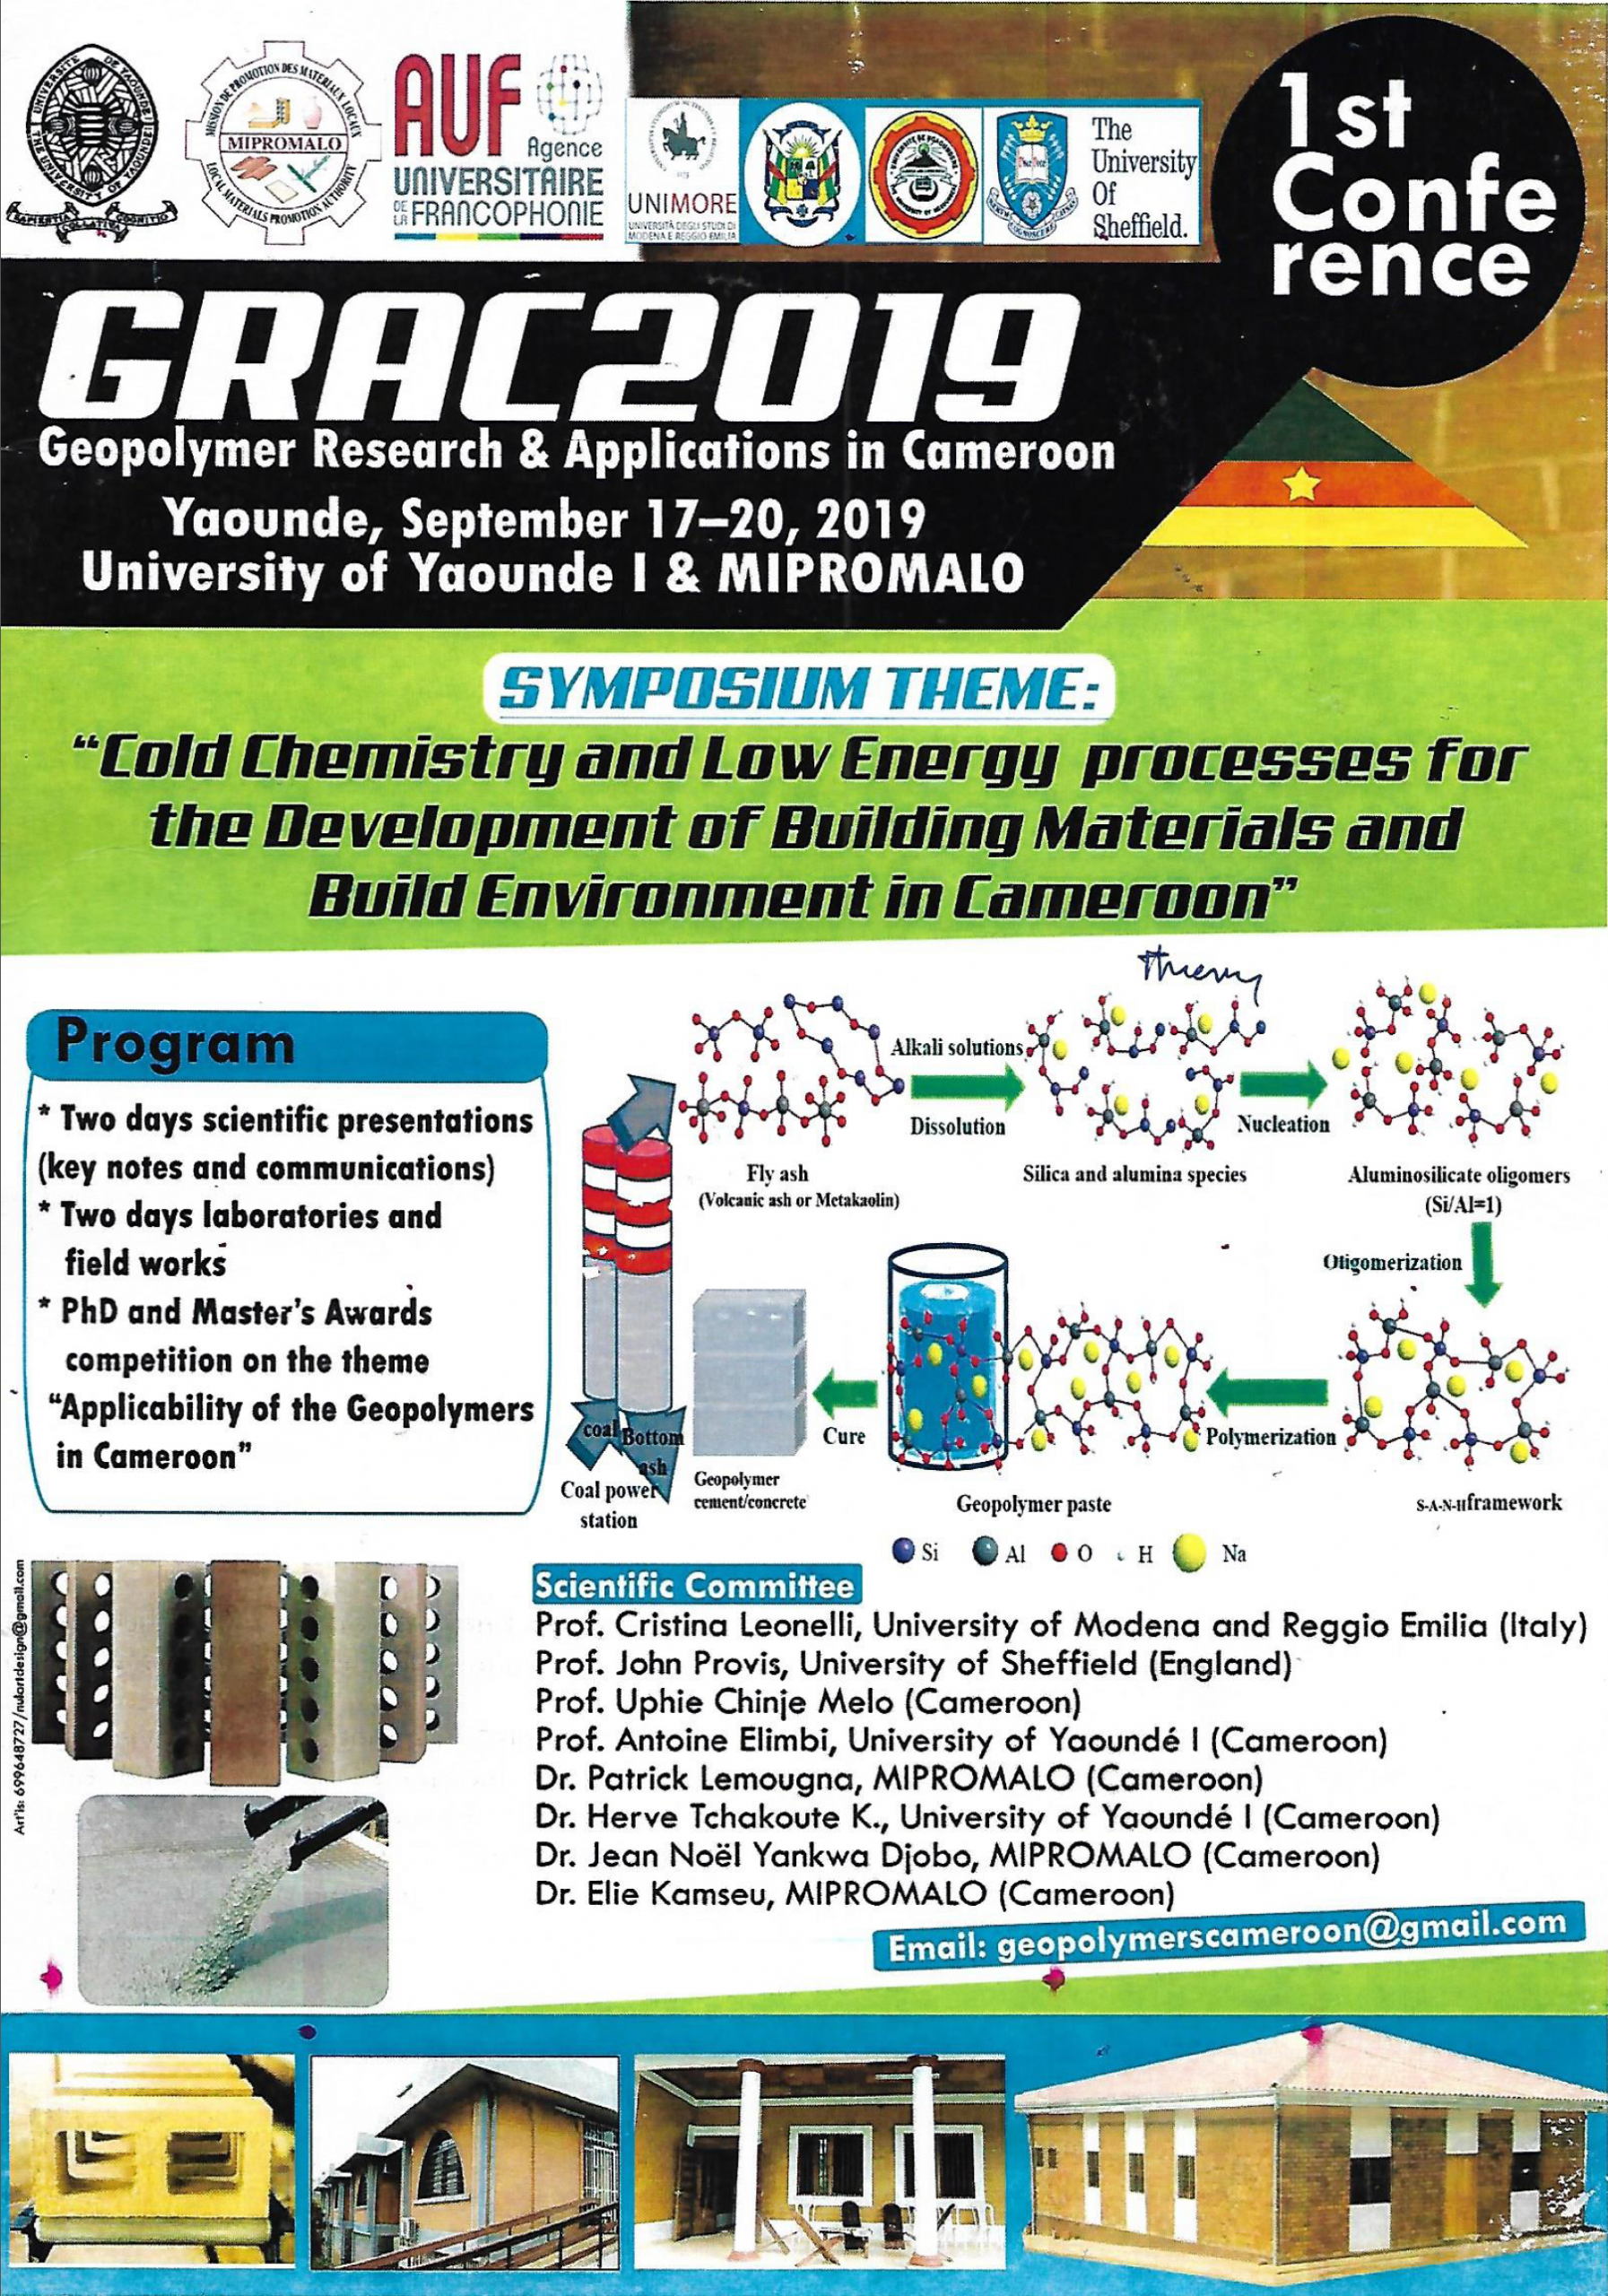 Geopolymer Research & Application in Cameroon, Yaoundé, September 17-20, 2019